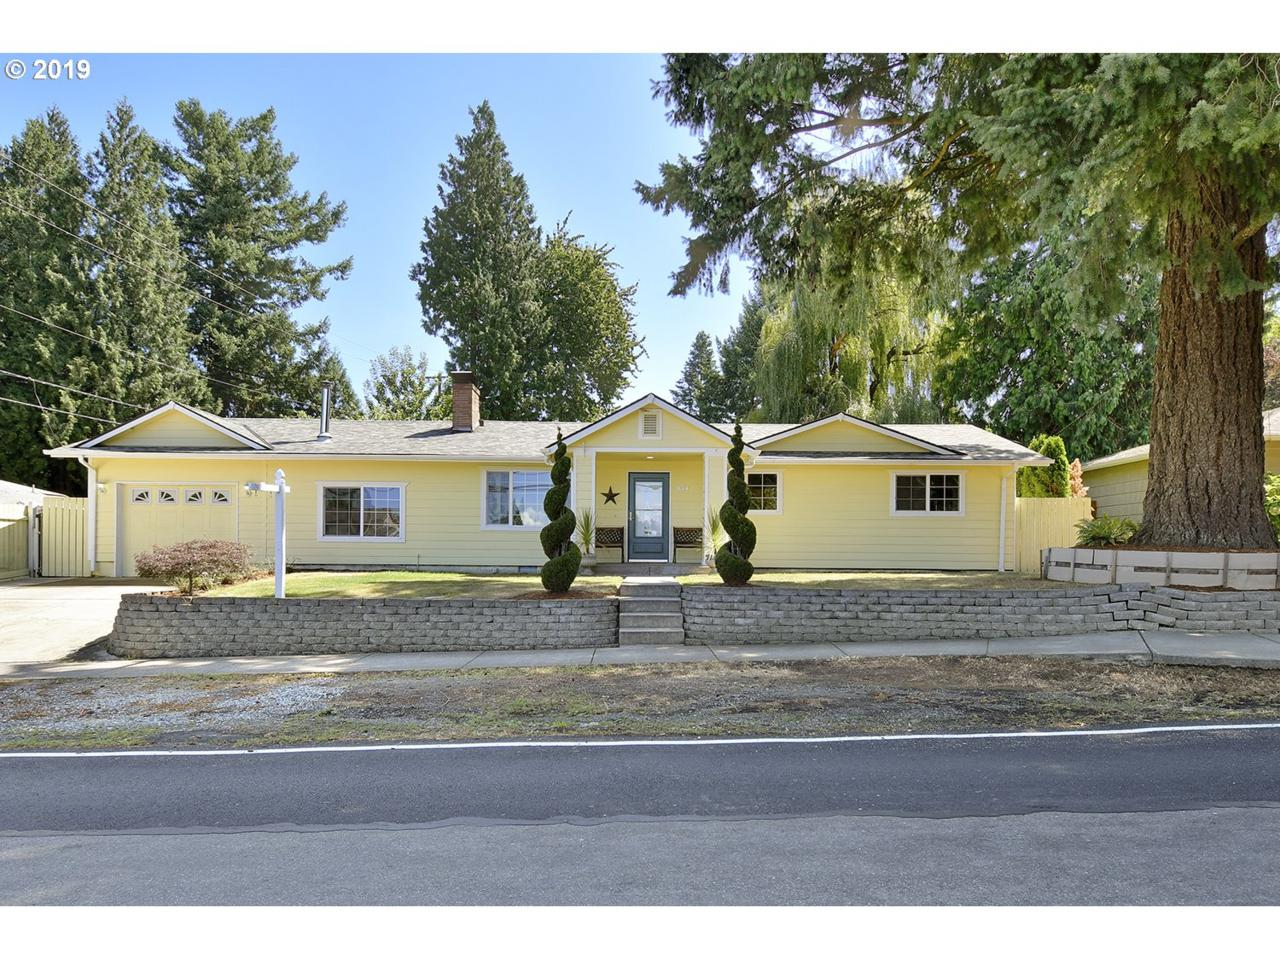 844 212TH Ave - Photo 1